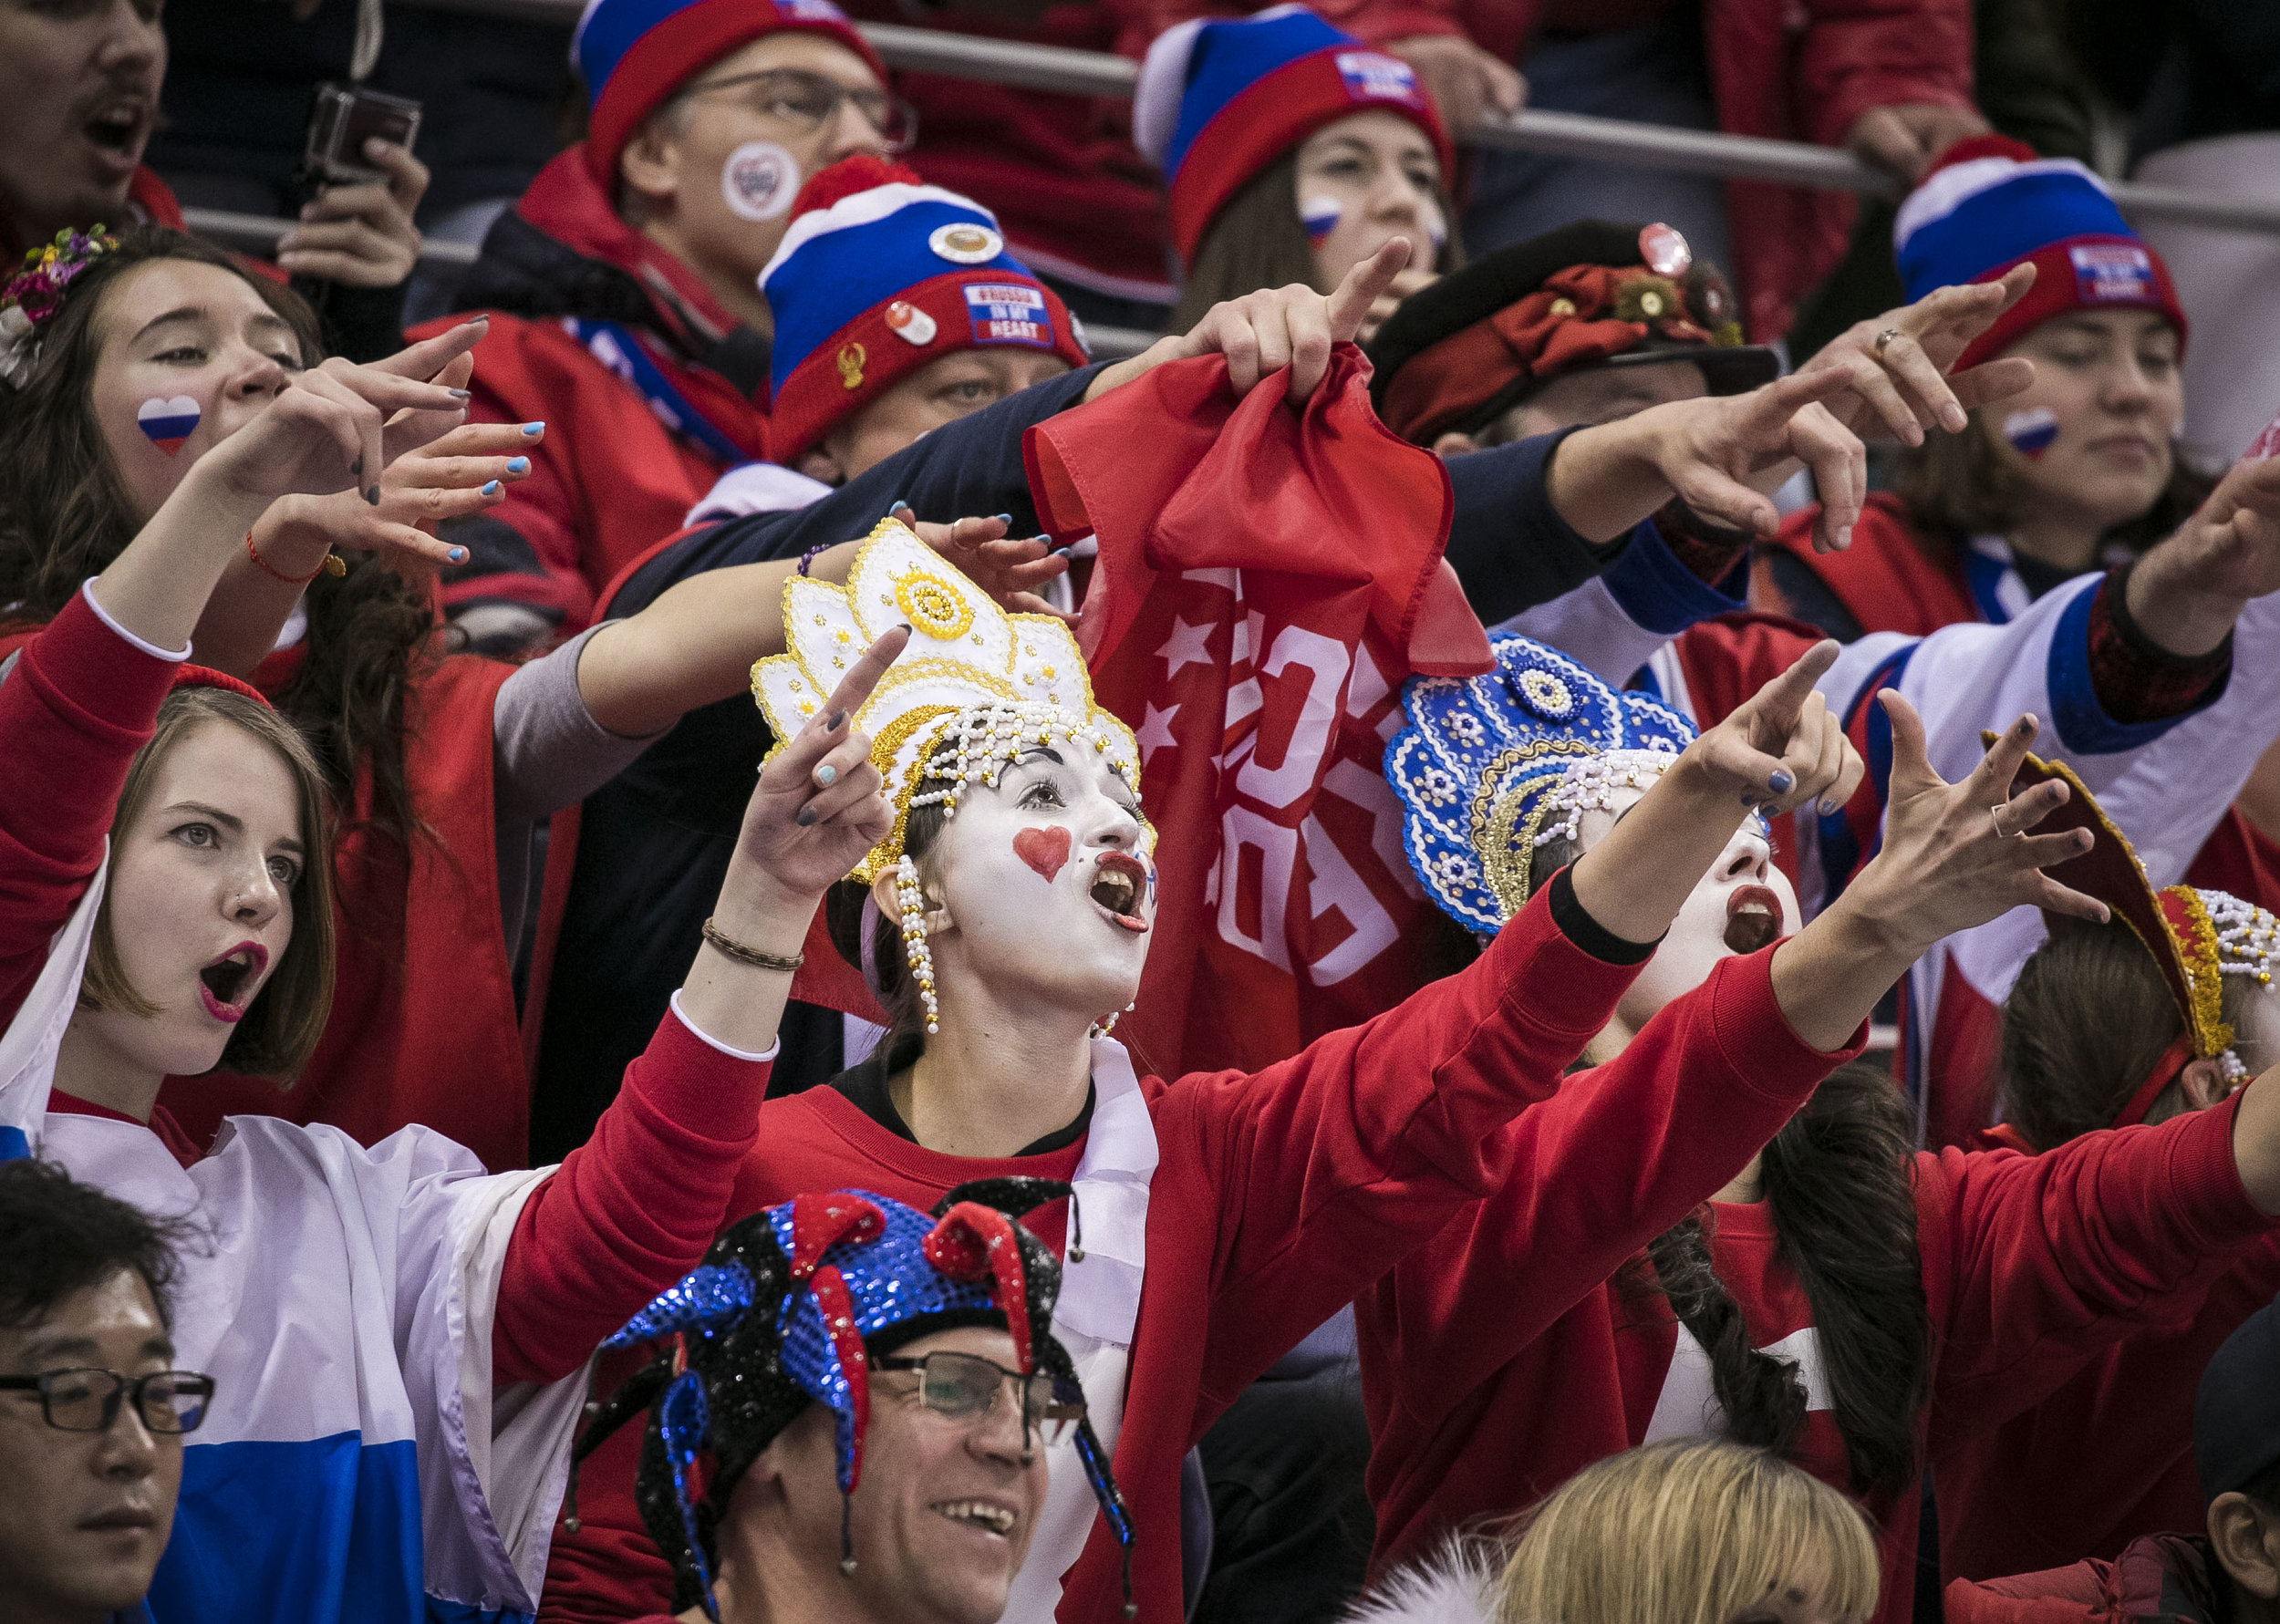 Olympic Athletes of Russia fans chant during a hockey game against USA, Feb. 17, Gangneung Hockey Centre. U.S. lost, 4-0 in a shut out against the Olympic Athlete's of Russia.